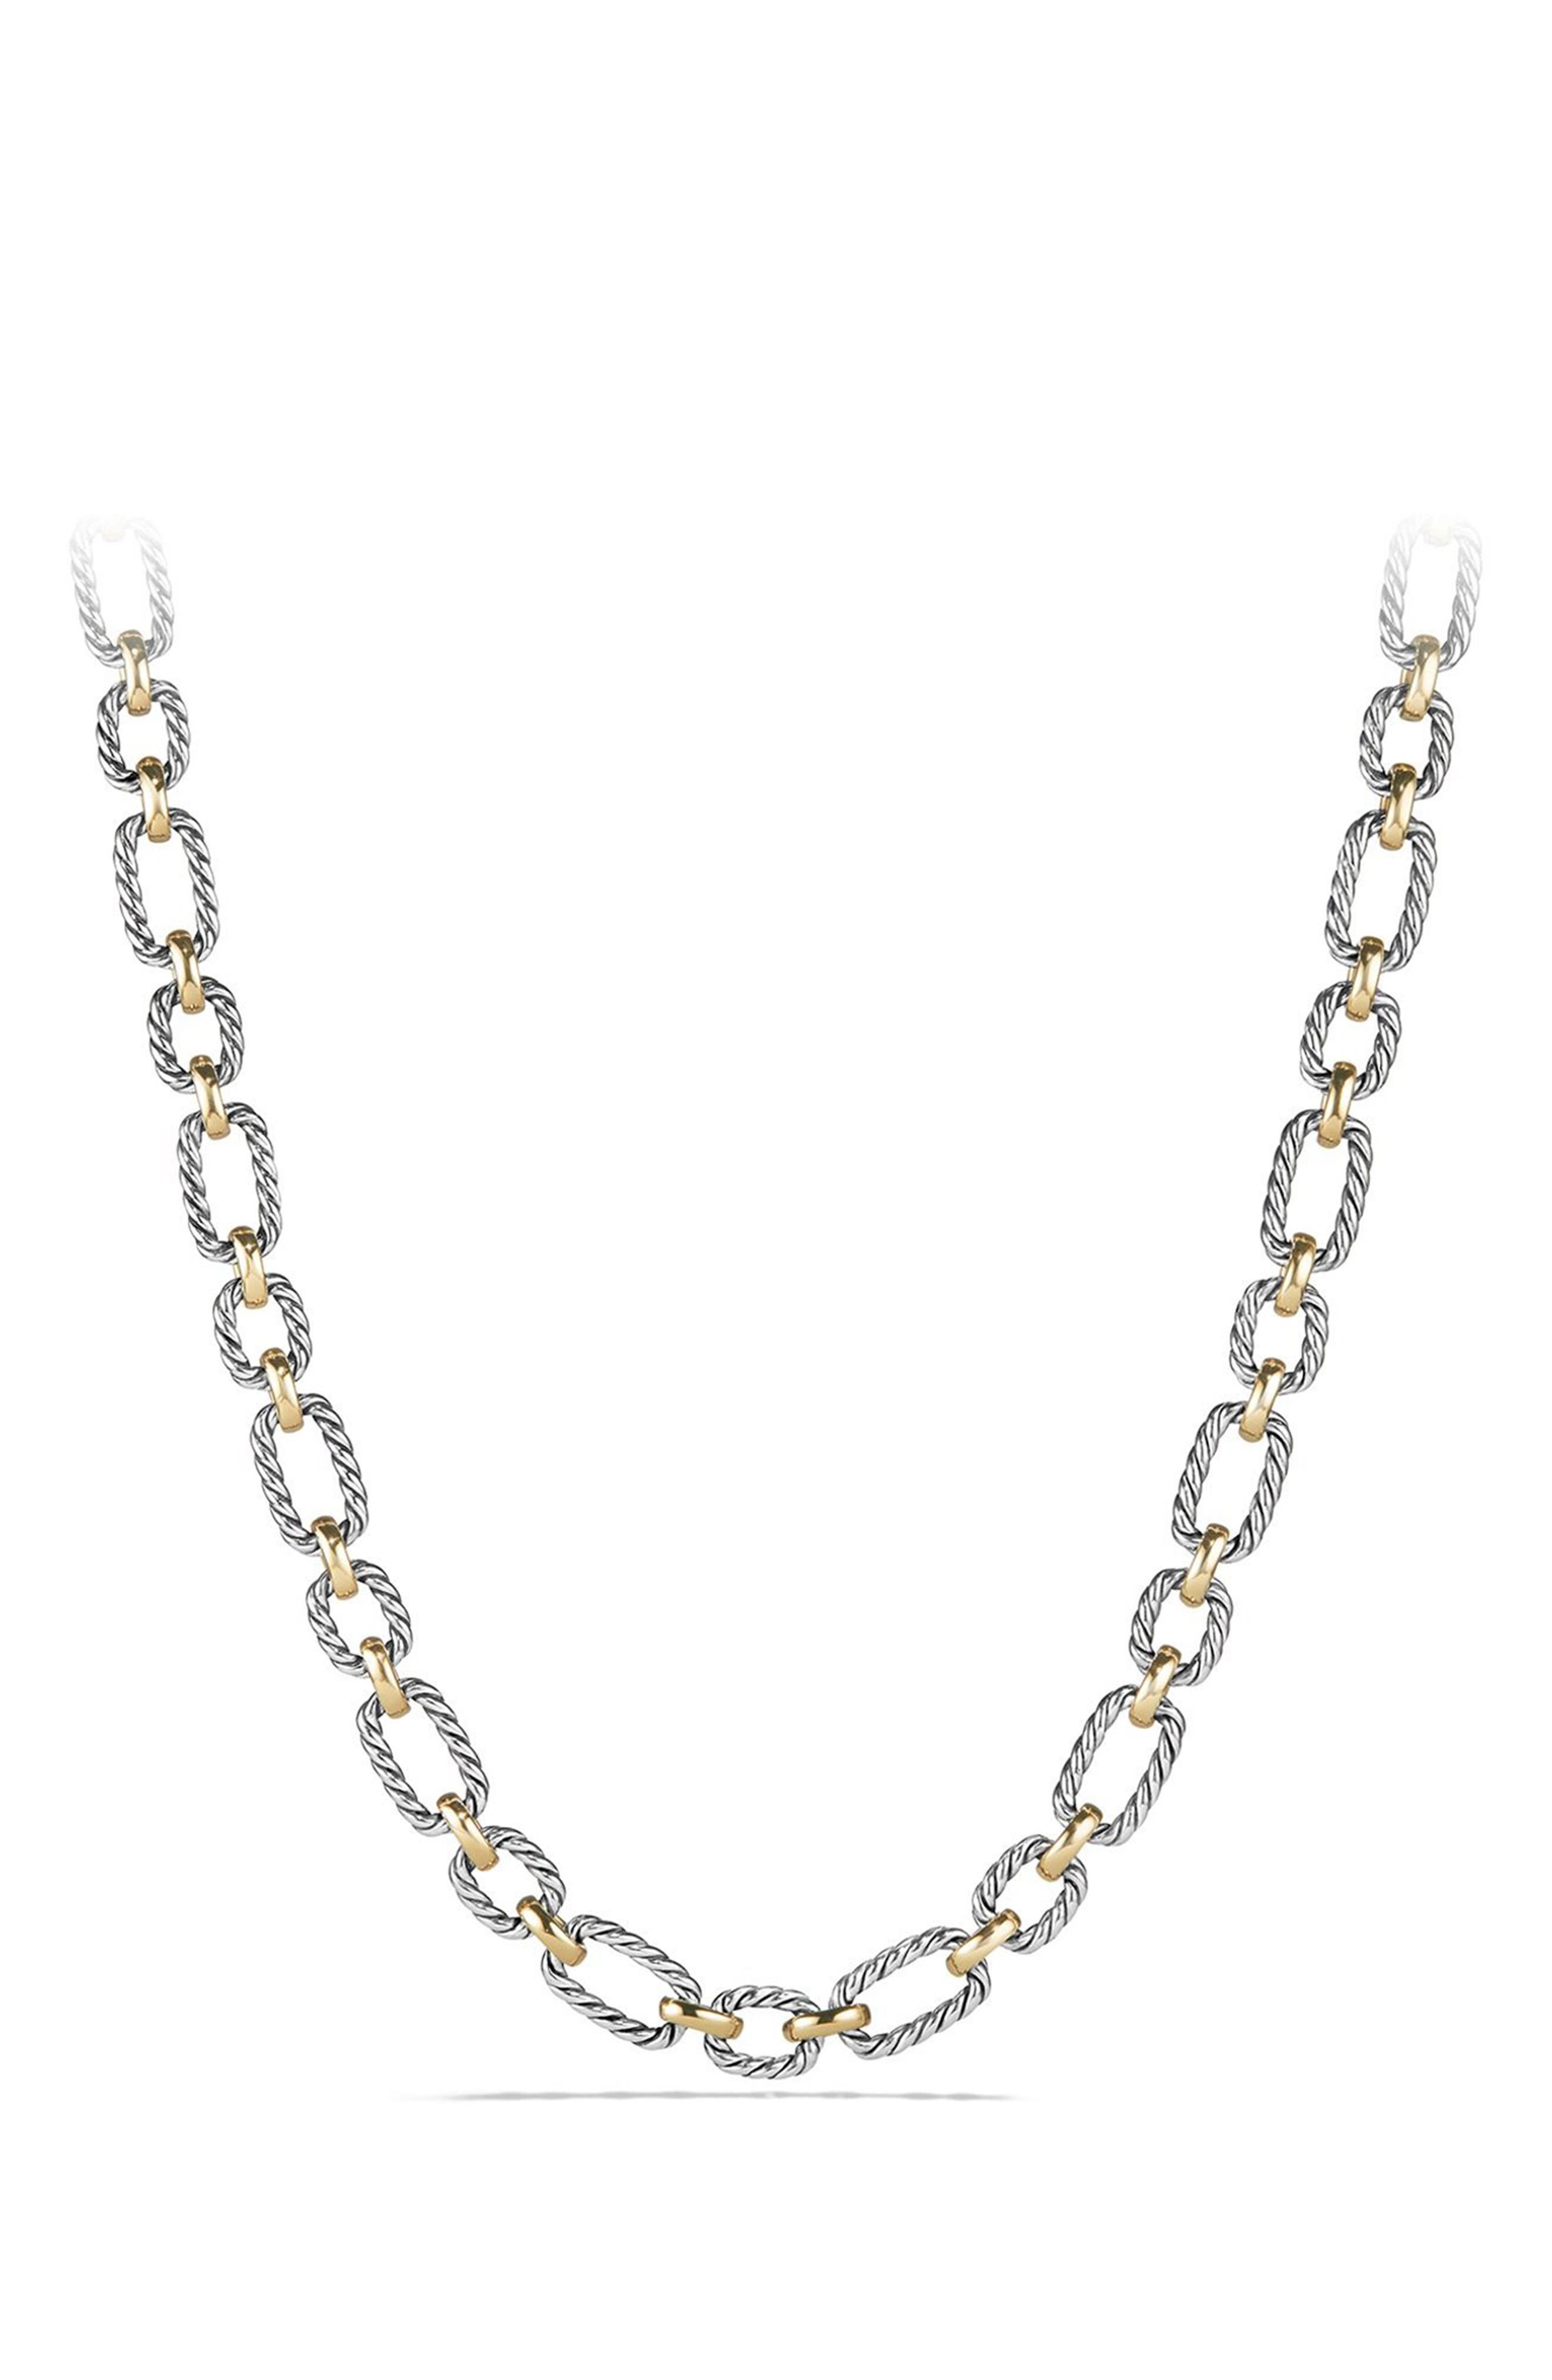 'Chain' Cushion Link Necklace with Sapphires & 18K Gold,                             Main thumbnail 1, color,                             SILVER/ GOLD/ BLUE SAPPHIRE